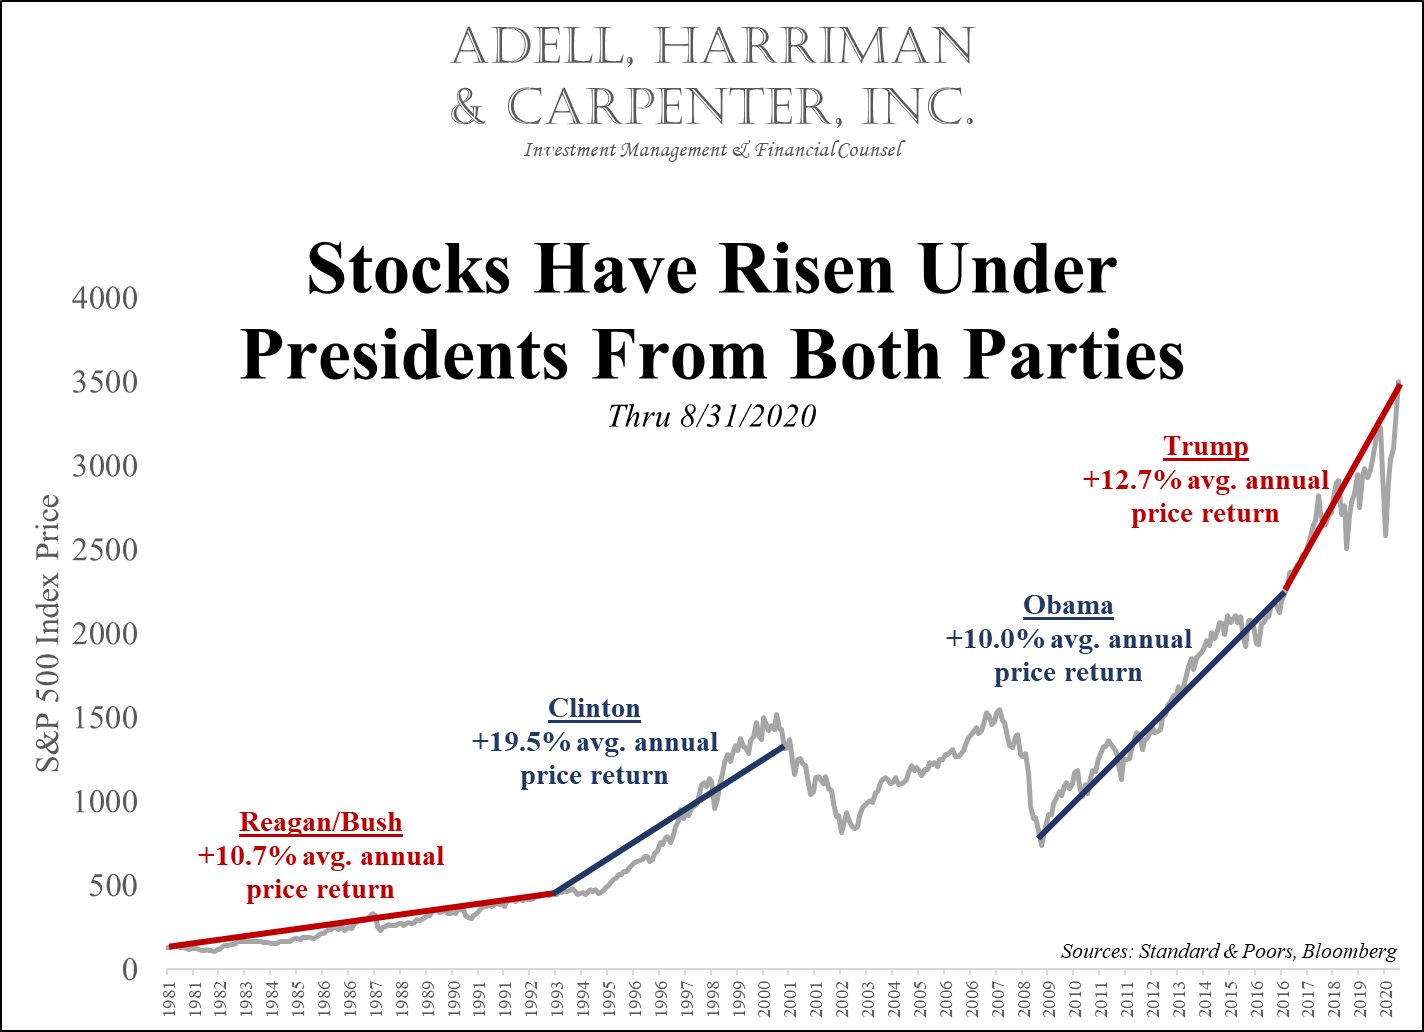 adell harriman and carpenter stocks rise under presidents from both parties